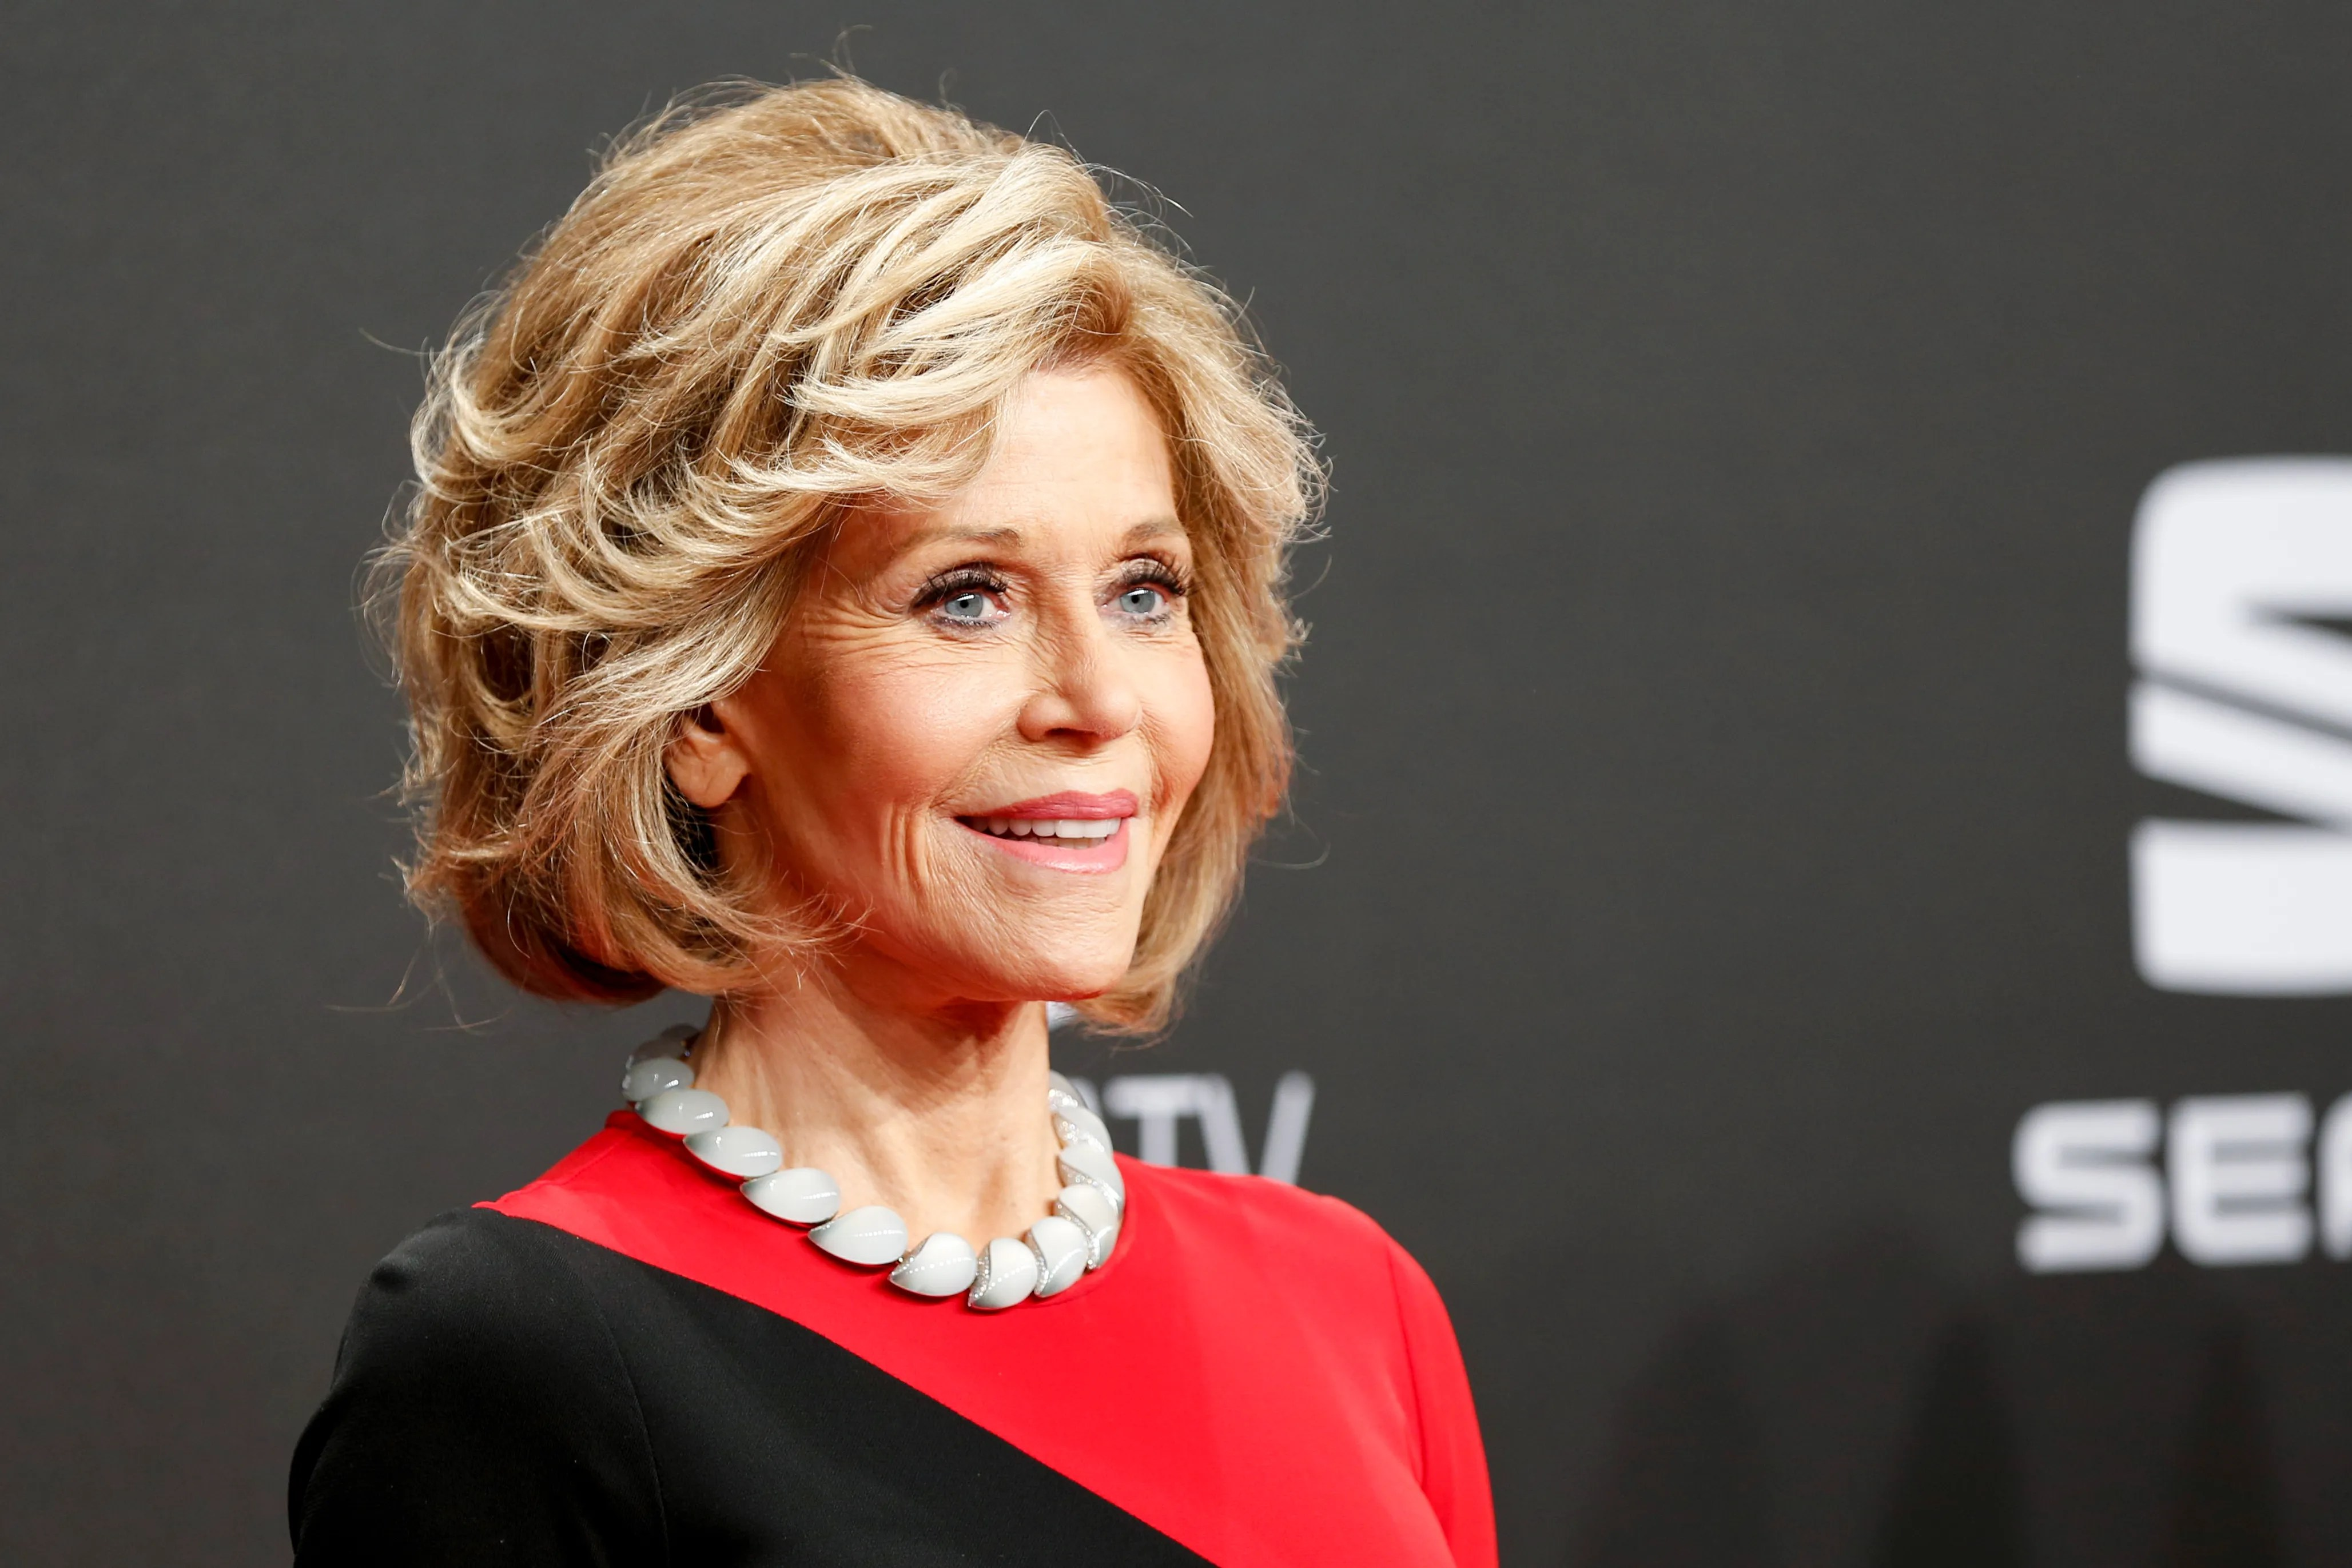 Jane Fonda Gets Real About Using Vibrators at Age 79